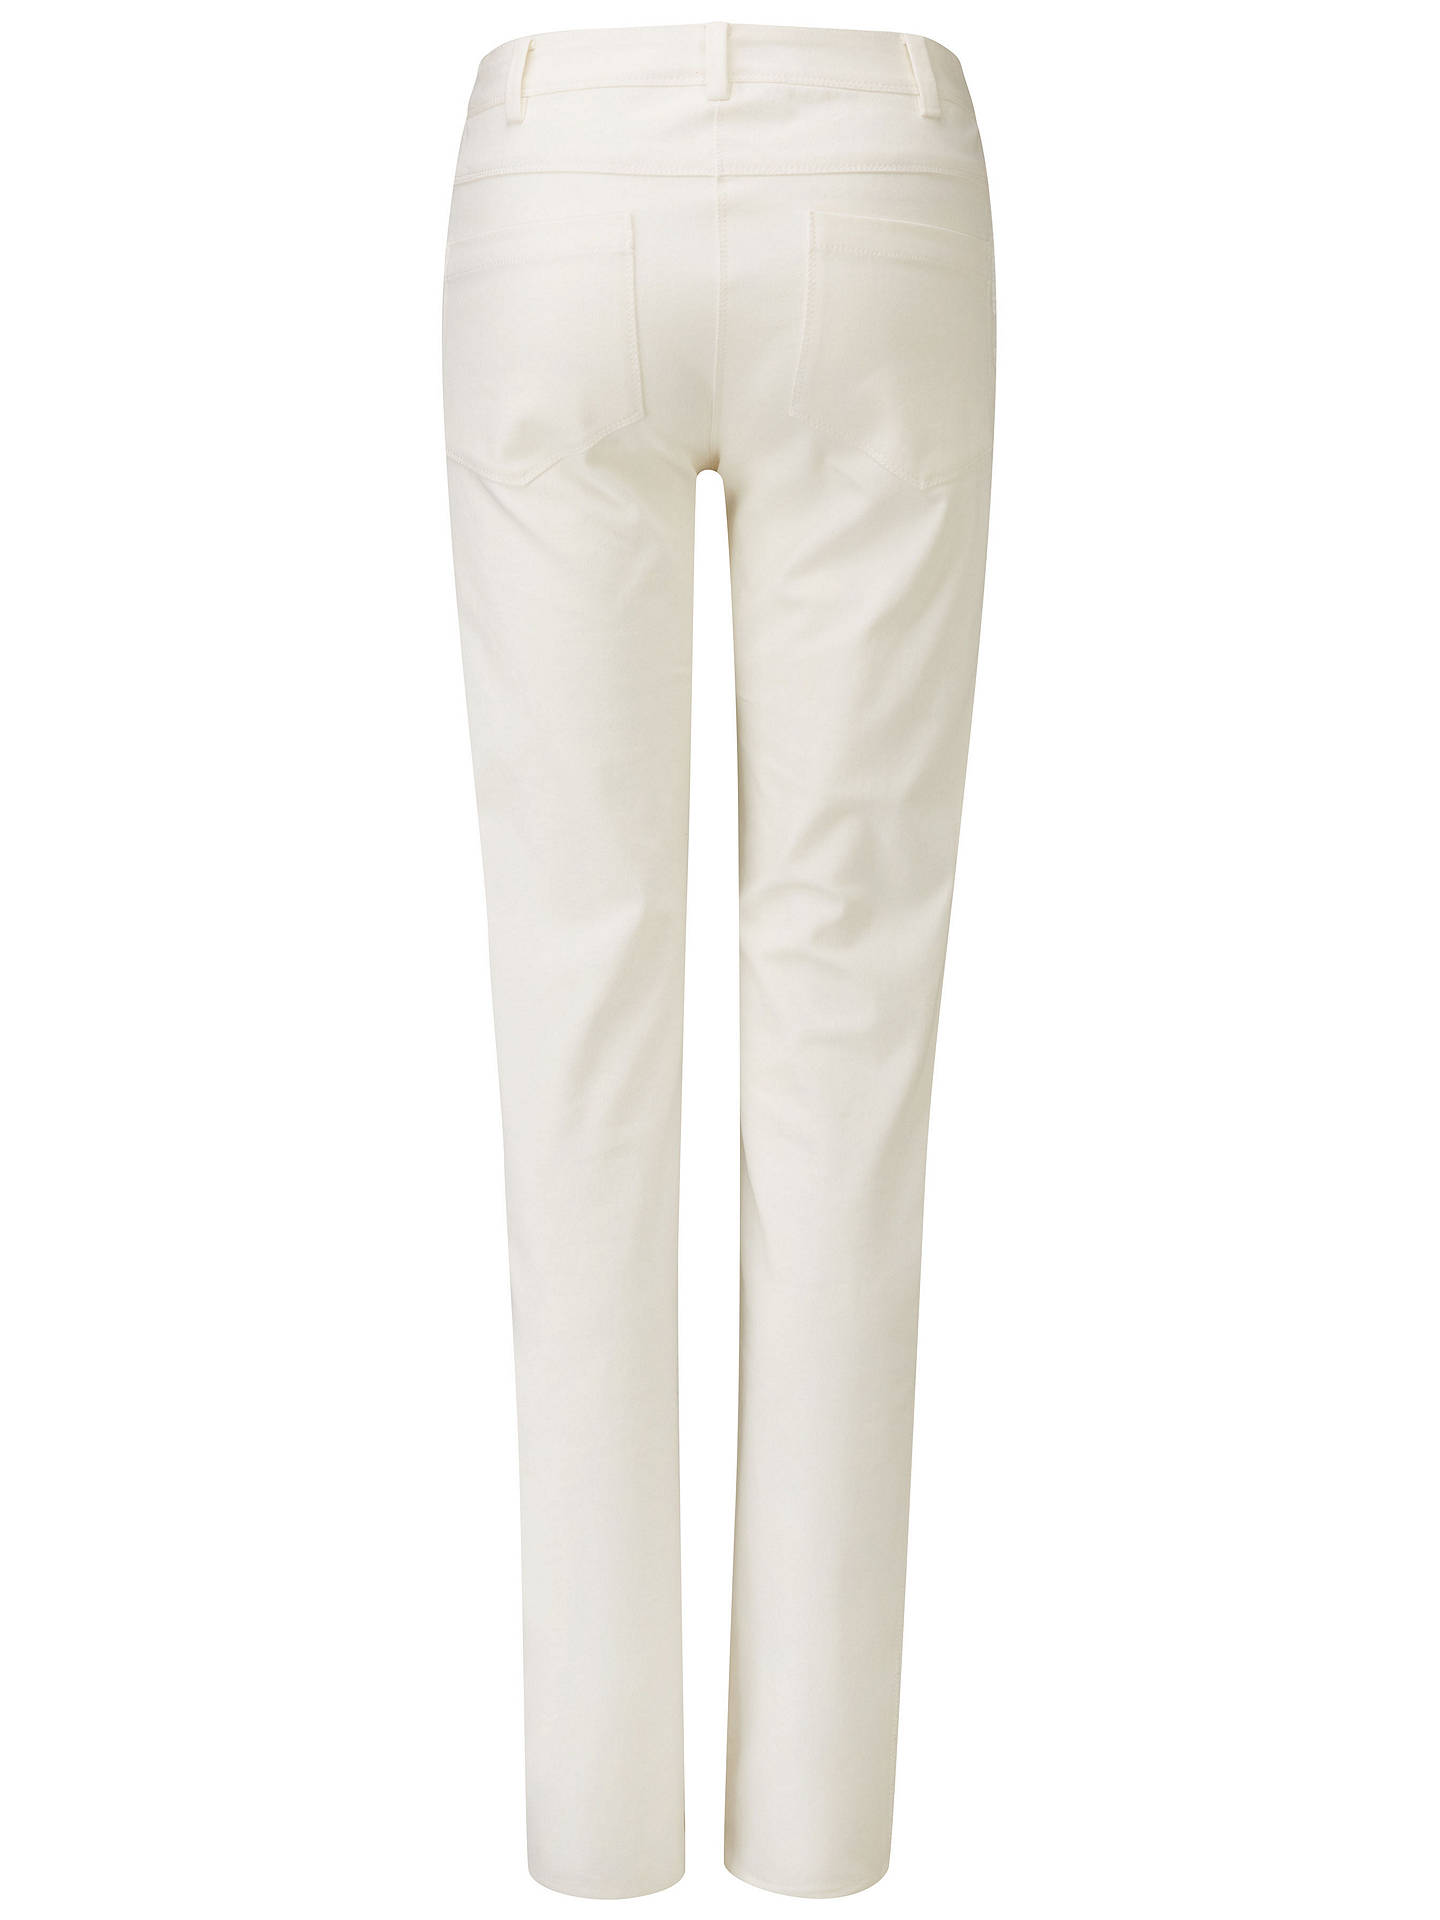 BuyPure Collection Cotton Stretch Straight Leg Jeans, Soft White, 8 Online at johnlewis.com